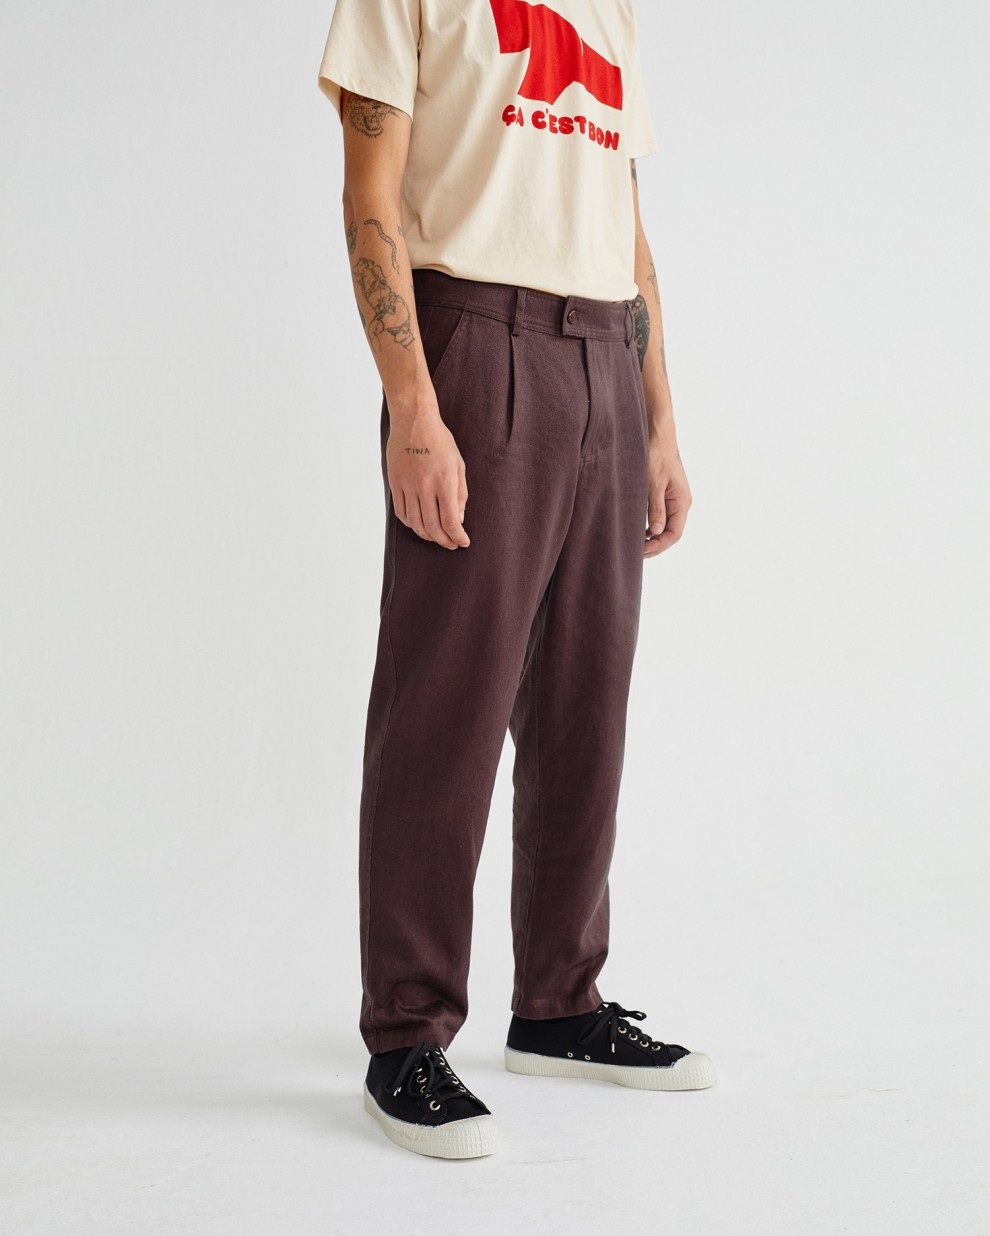 CHOCOLATE HEMP WOTAN PANTS